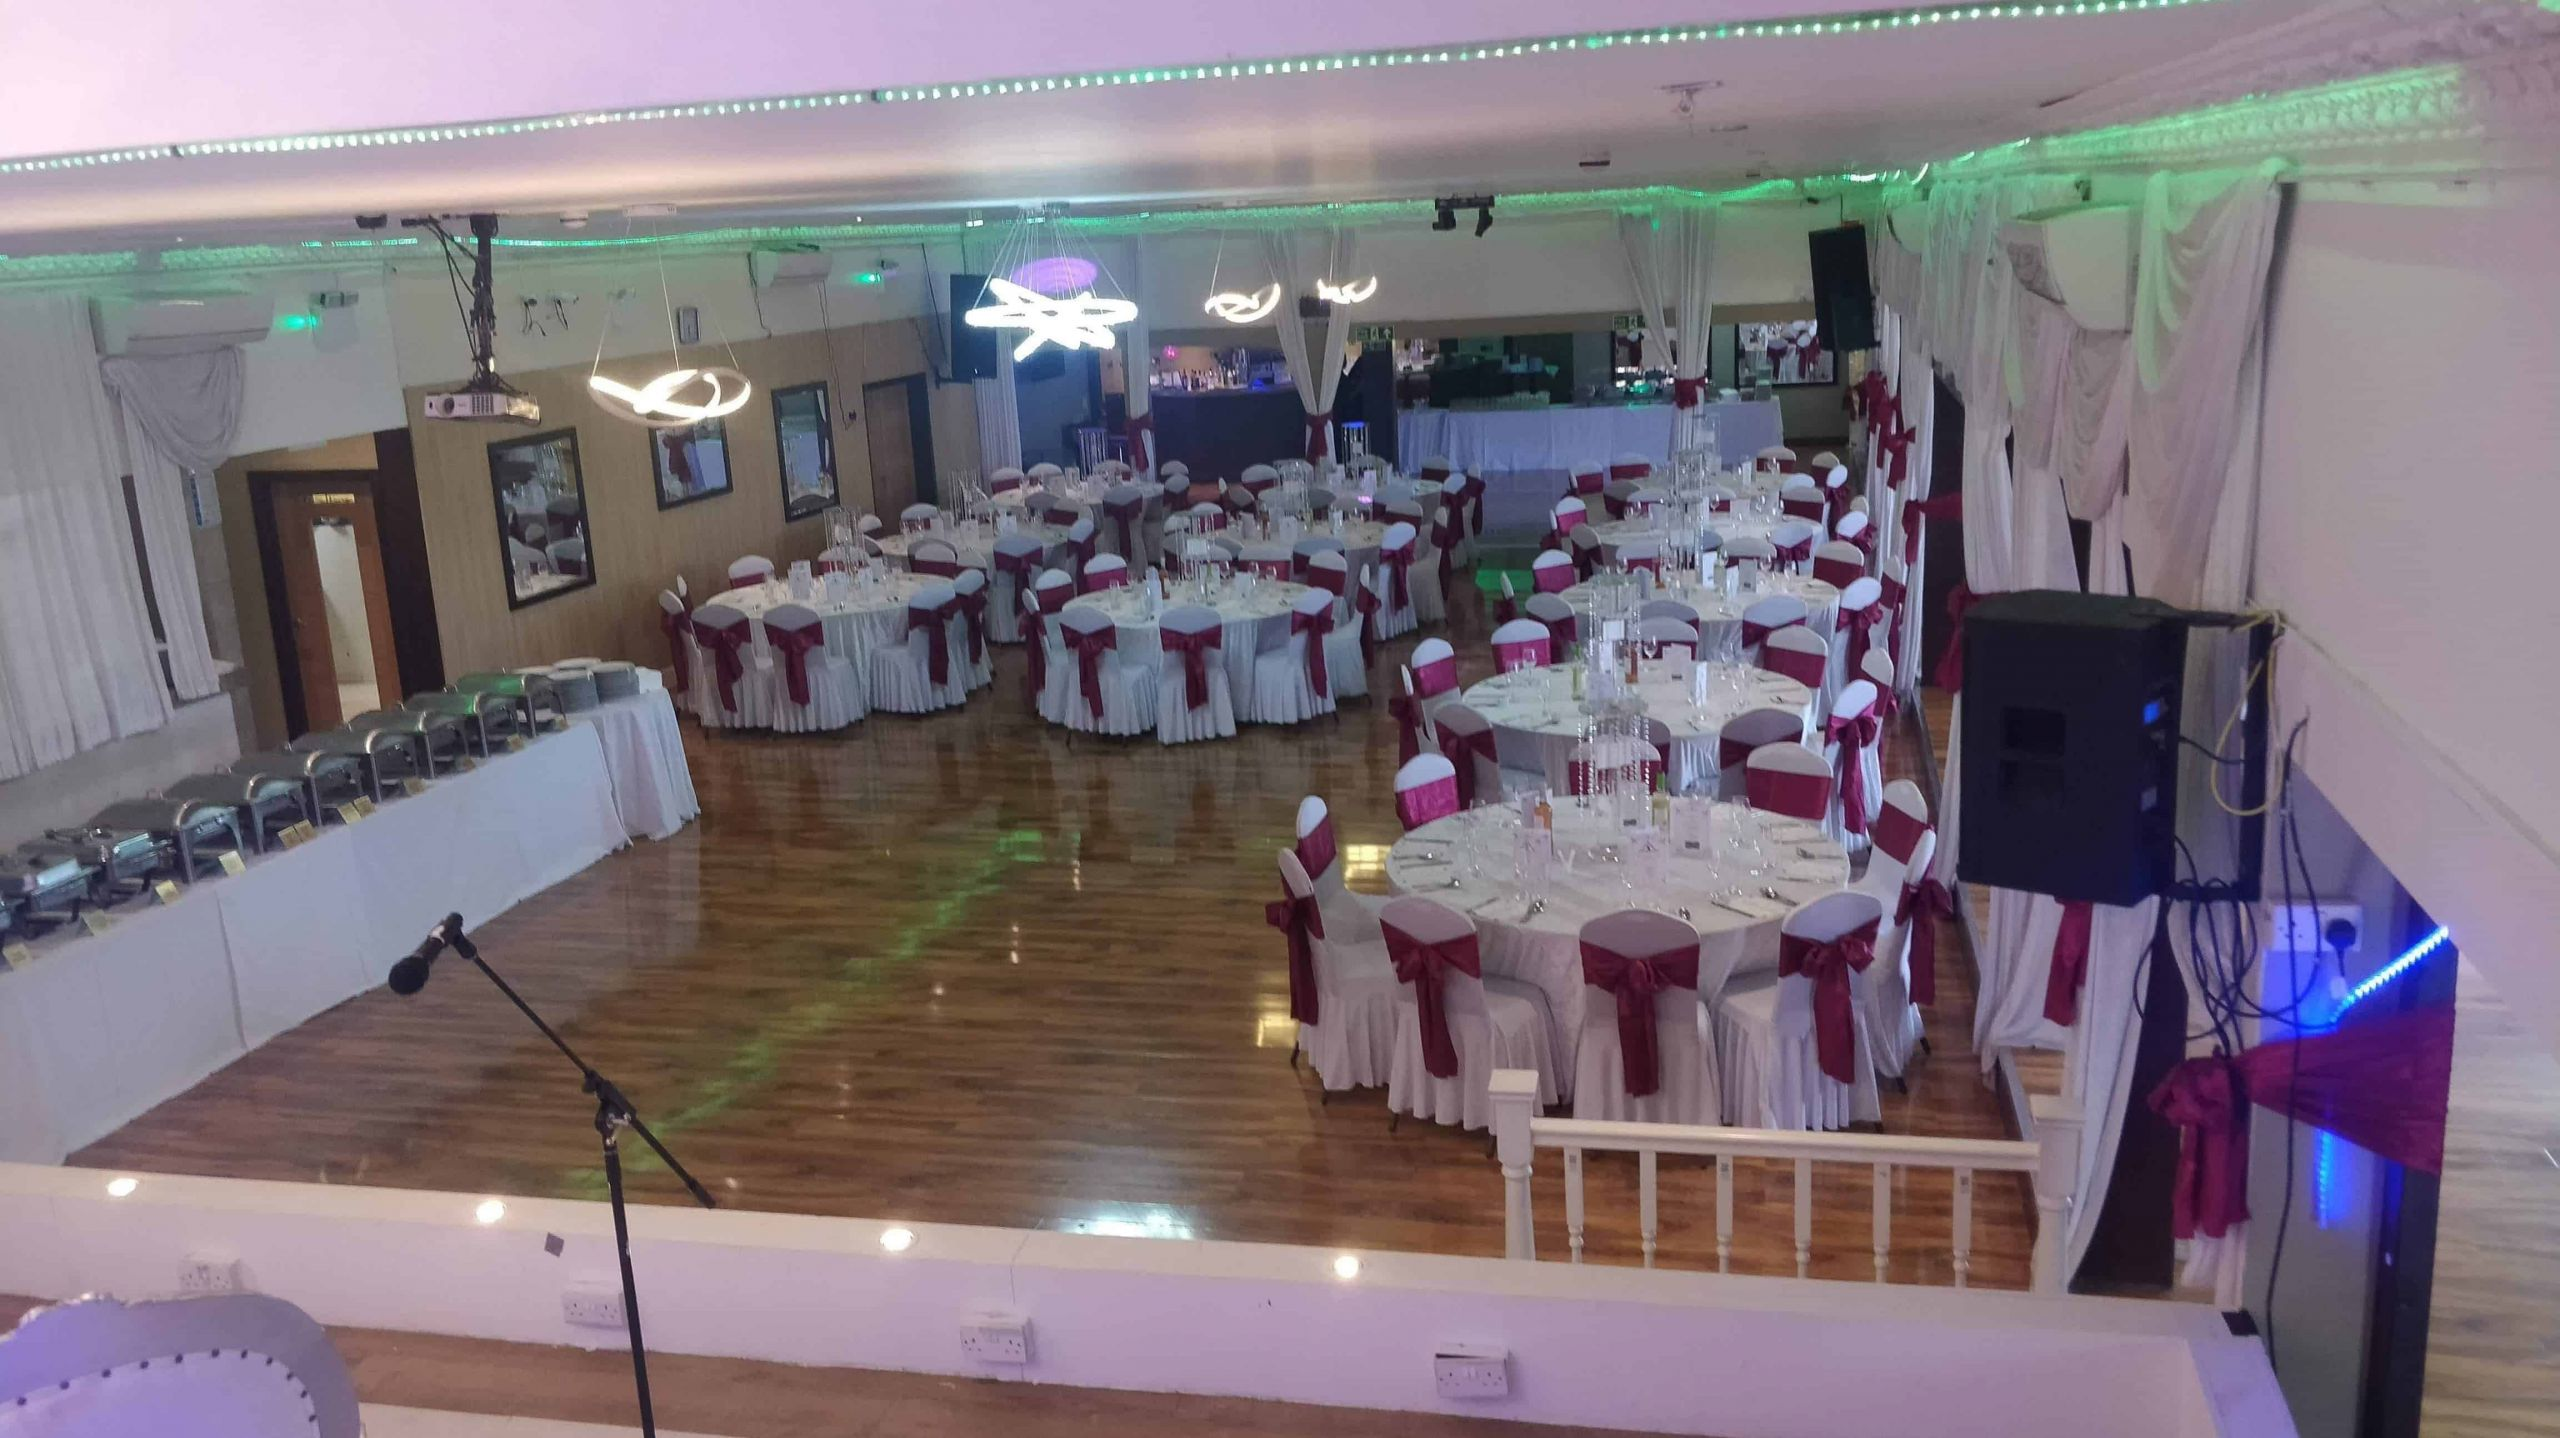 Birthday Party Halls For Rent  Birthday Party Hall Hire near Me Guide